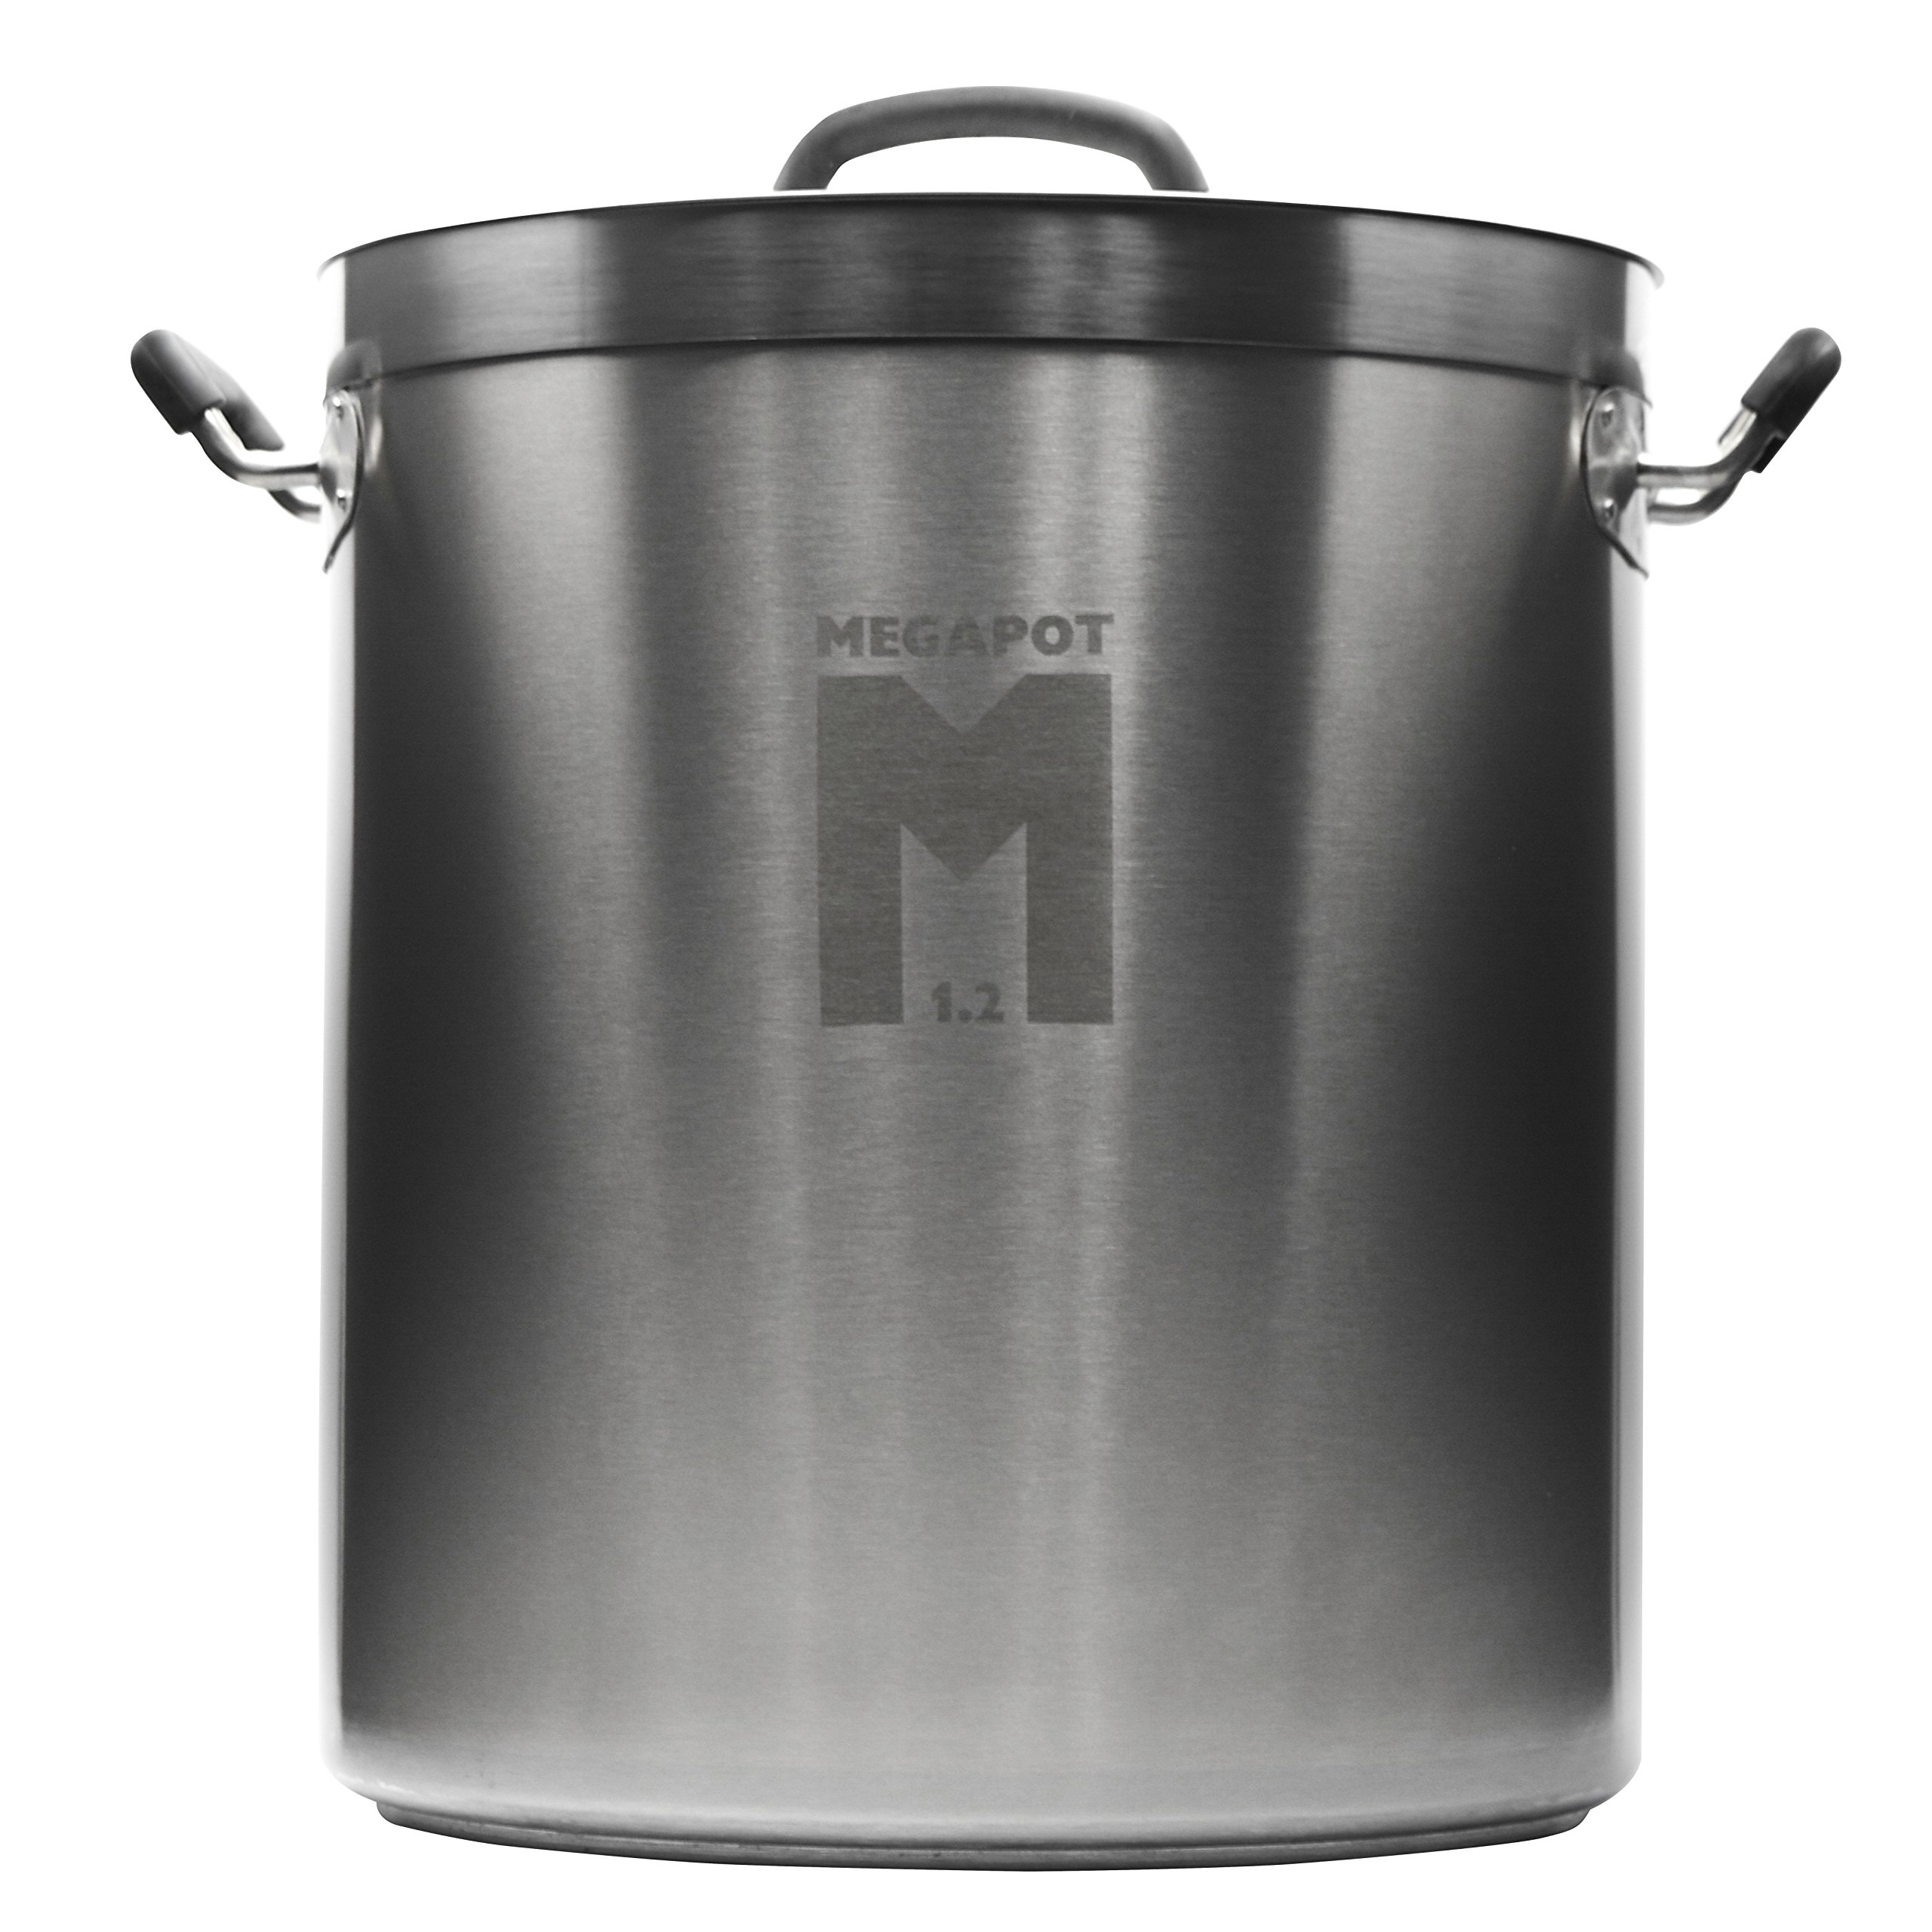 Northern Brewer - Megapot 1.2 Homebrew Stainless Steel Undrilled Brew Kettle Stock Pot For Beer Brewing (Plain Kettle, 8 Gallon/32 Quarts)